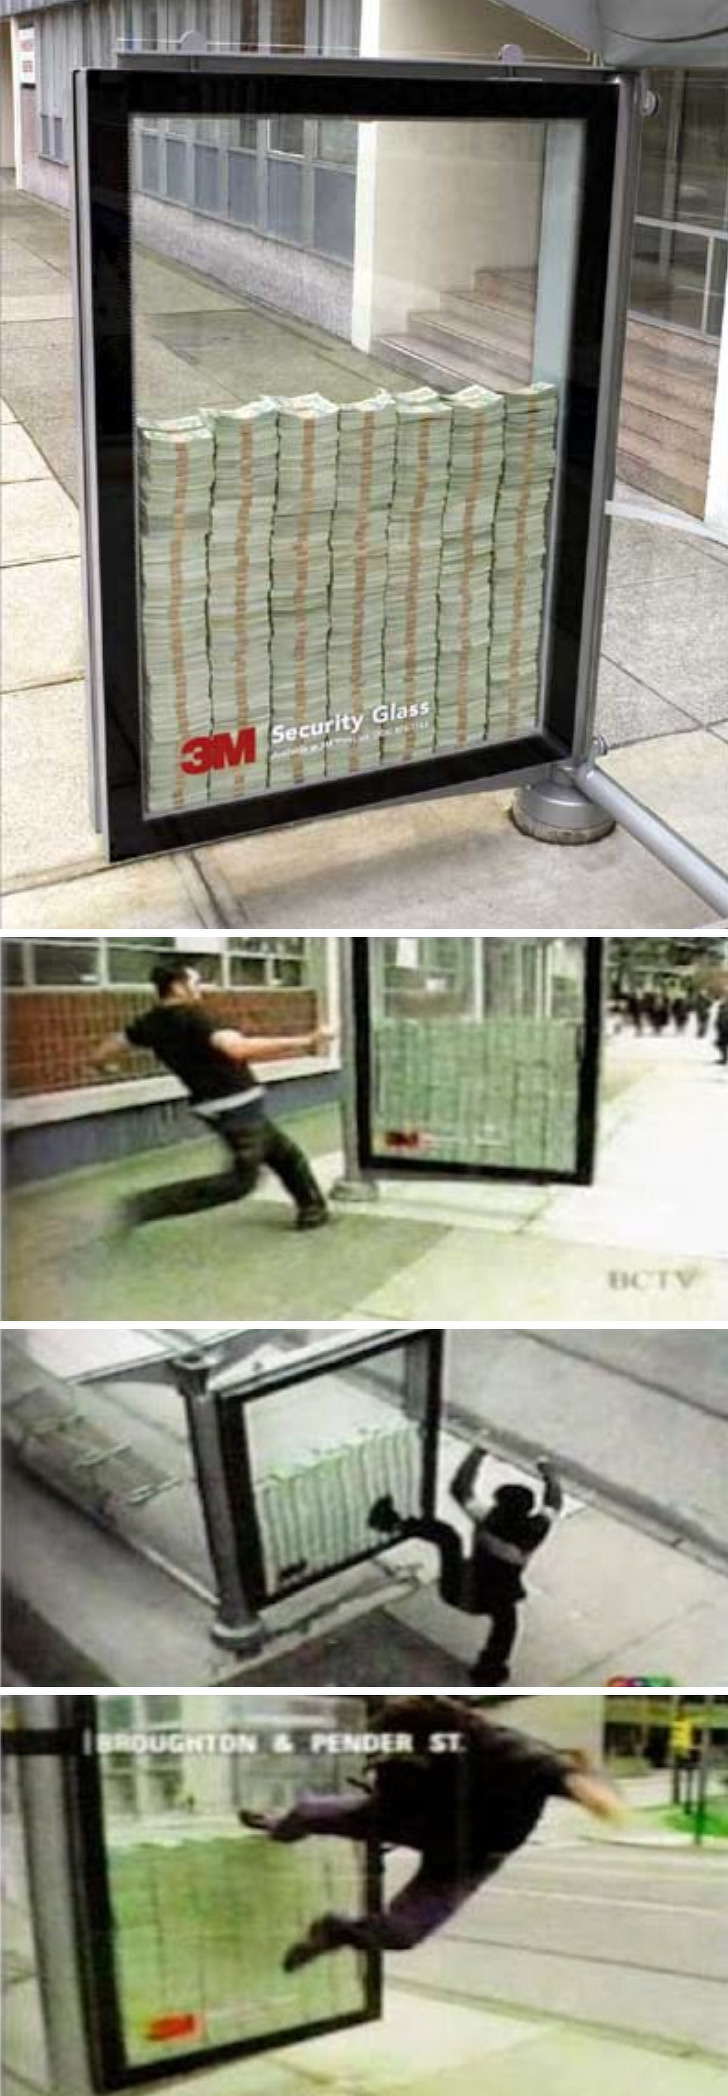 19Crazy Ads That Took Marketing toaWhole New Level